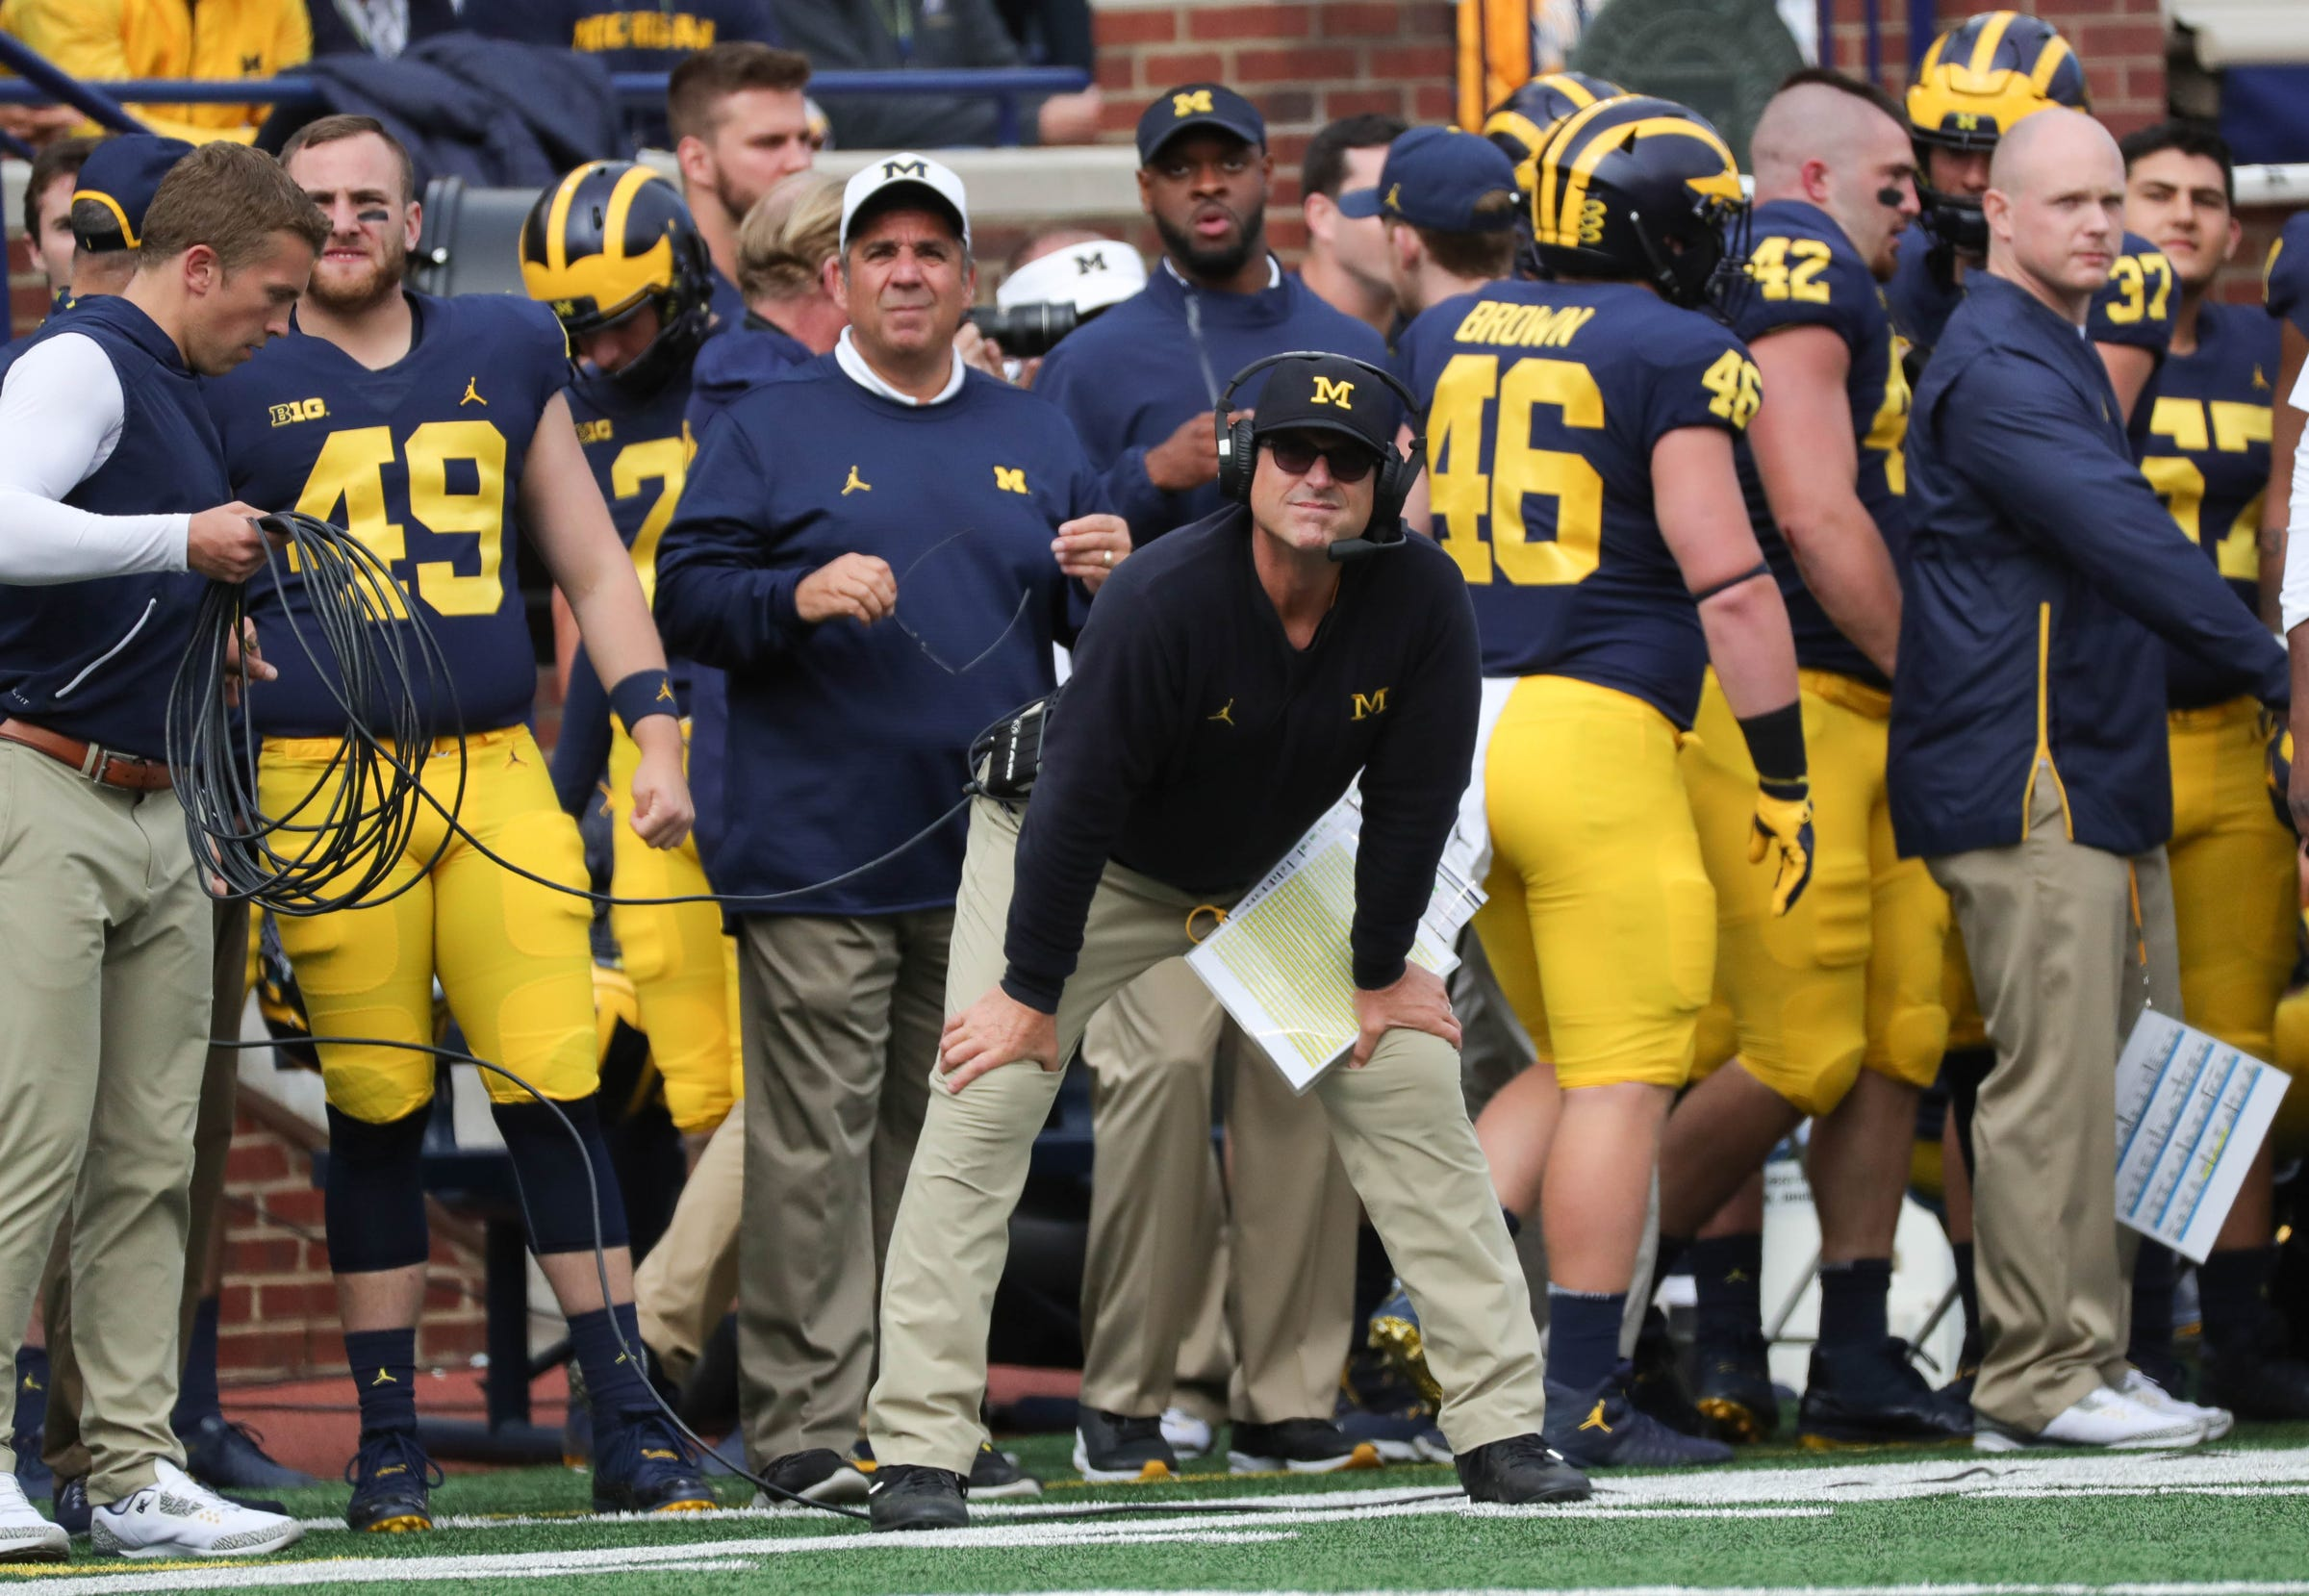 Jim Harbaugh watches a play during U-M's 56-10 win over Nebraska.